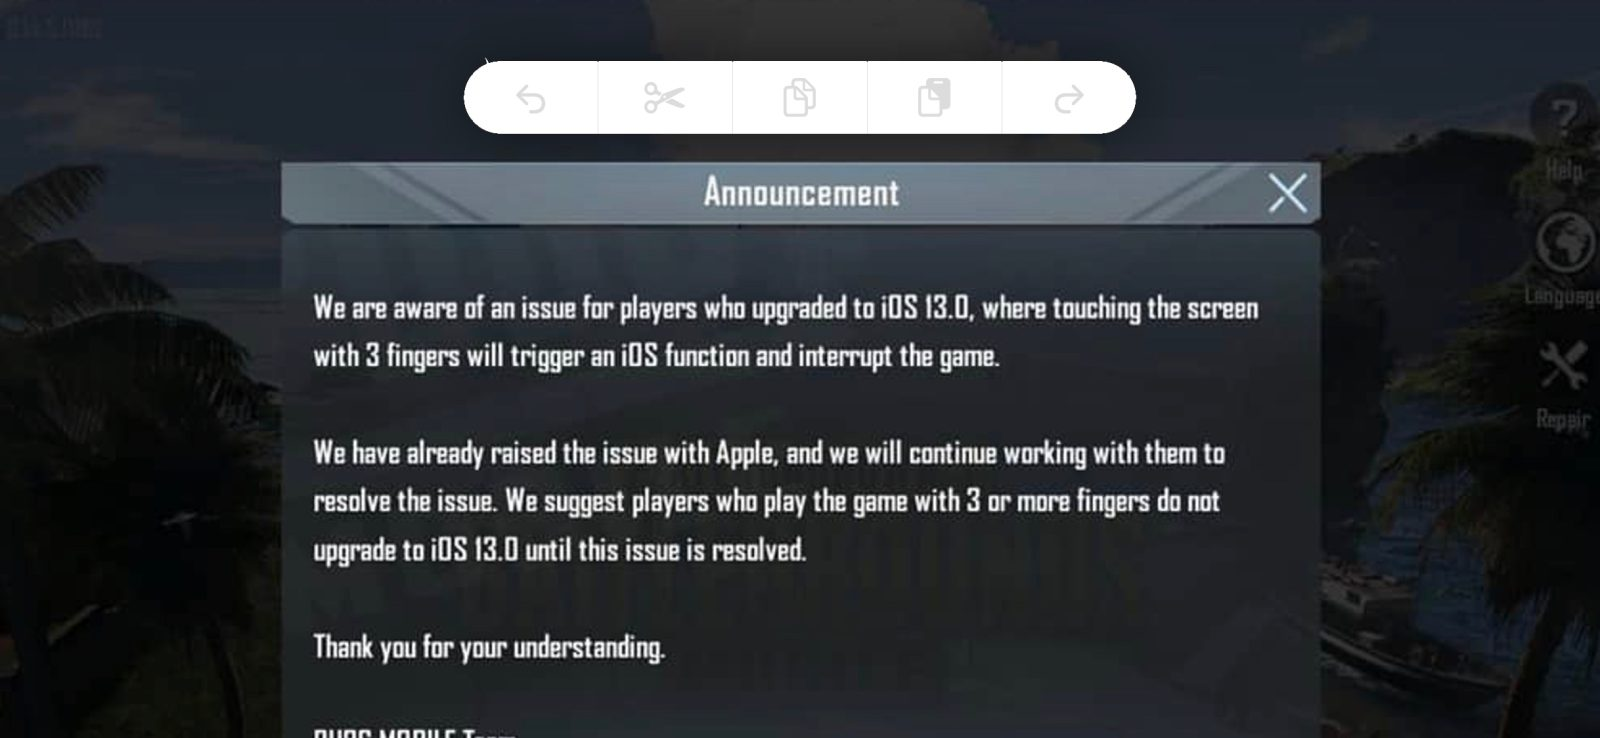 iPhone games including Fortnite and PUBG are unplayable on iOS 13 due to gesture bug, warning players not to update